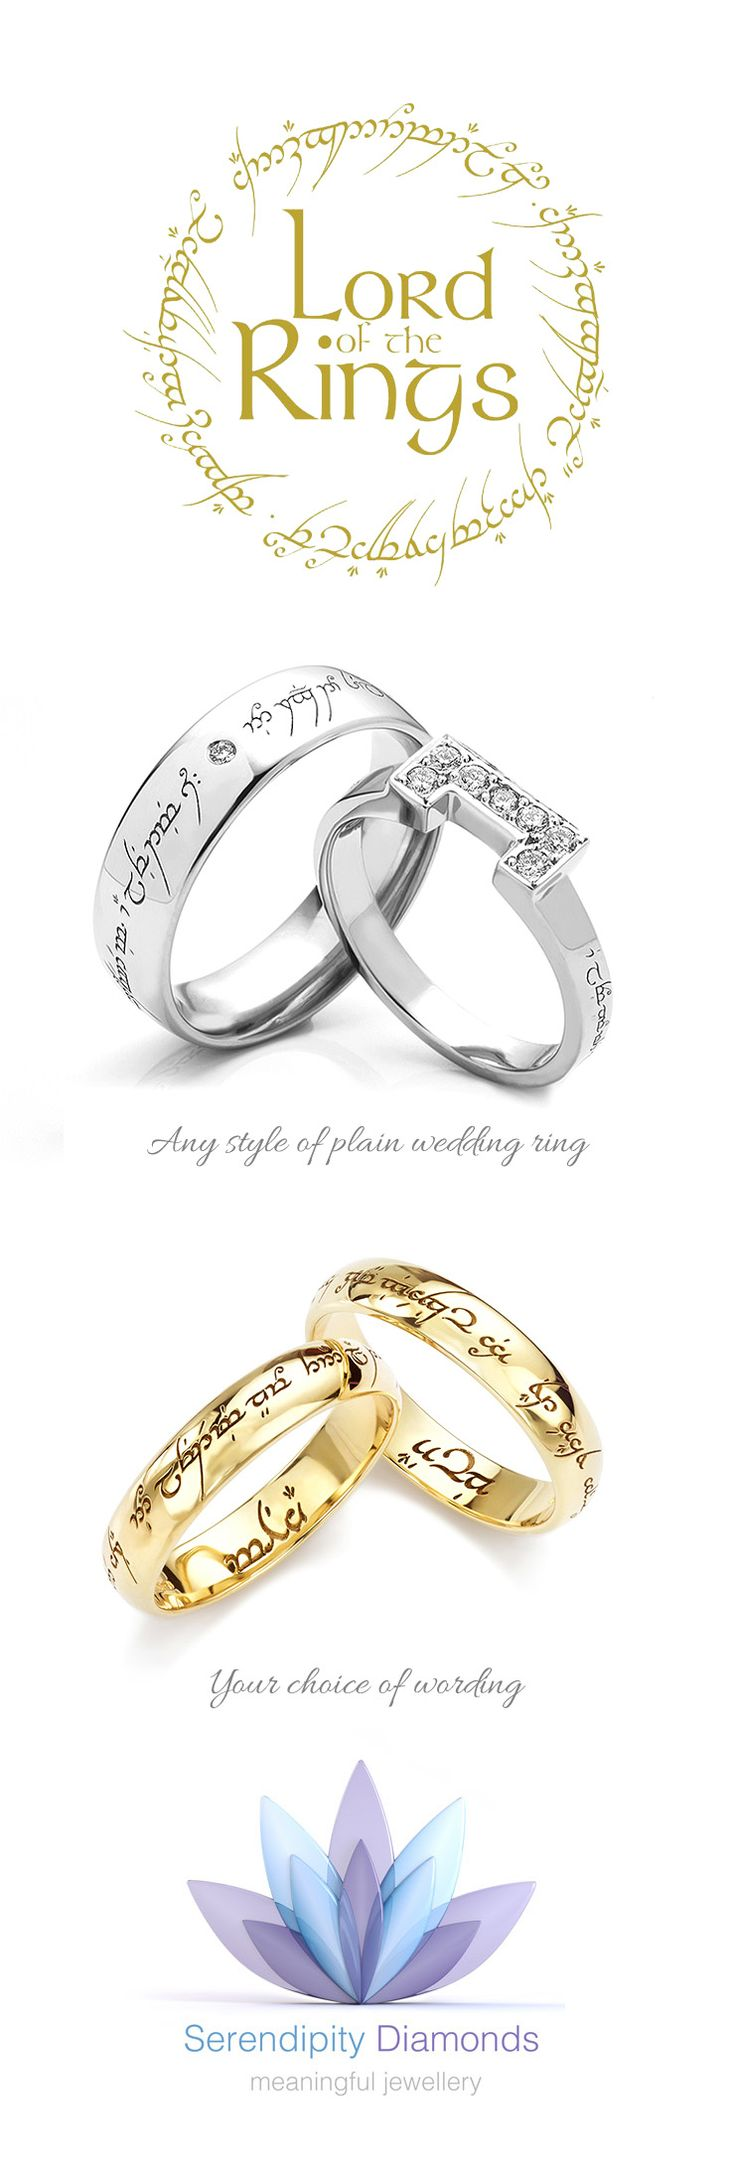 ladies diamond gordon jewelers p wedding rings gold band wave meaningful engraved s v accent in names